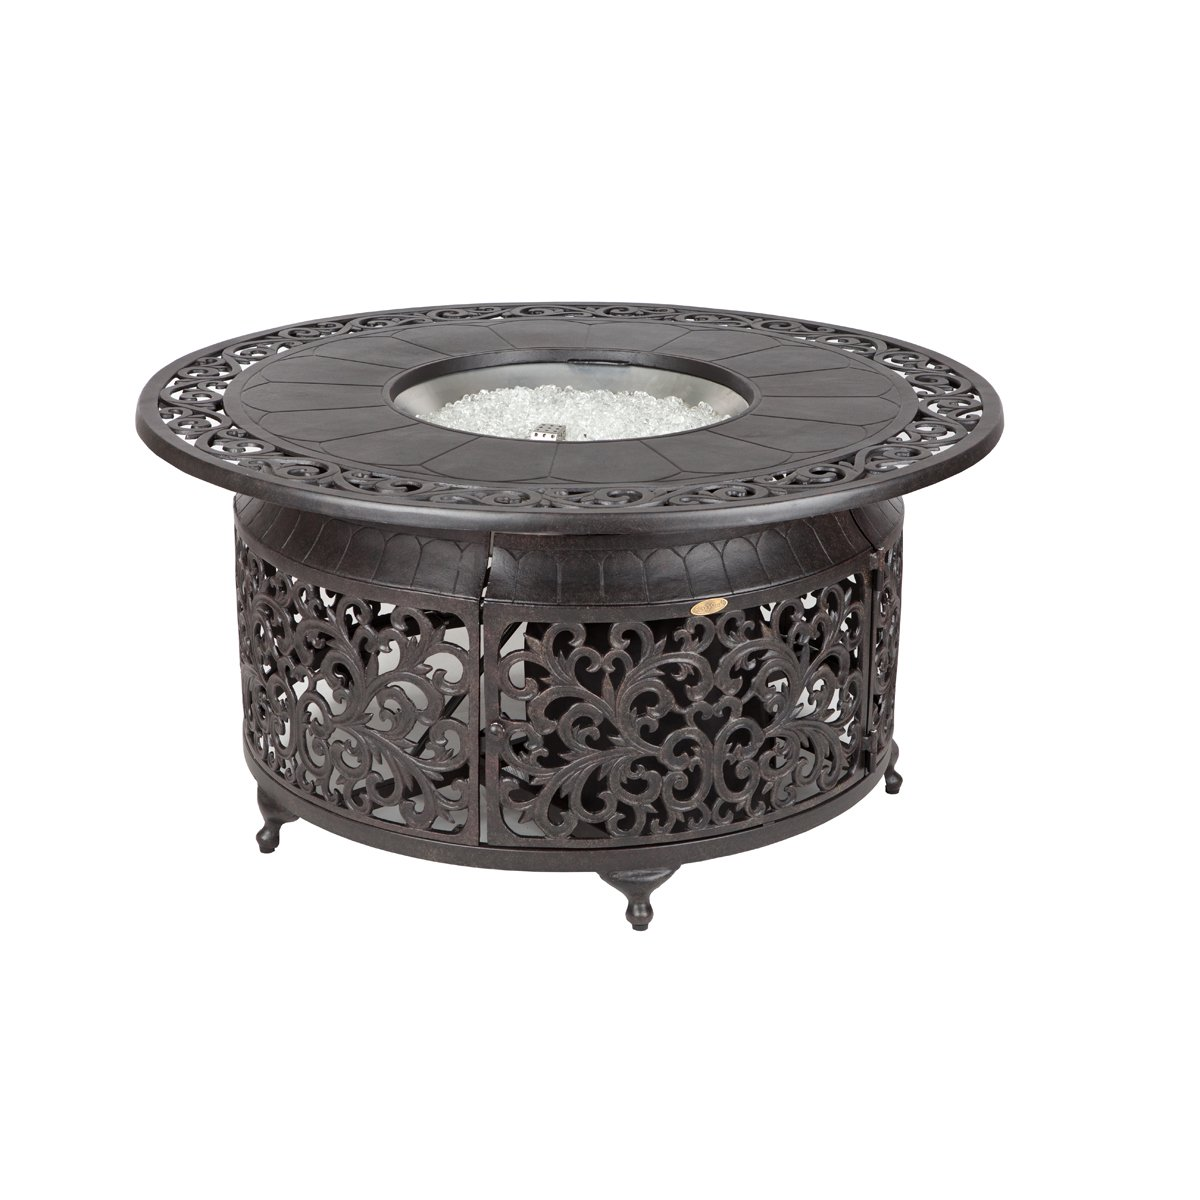 Amazoncom Fire Sense Cast Aluminum LPG Fire Pit Discontinued By - Cast aluminum gas fire pit table